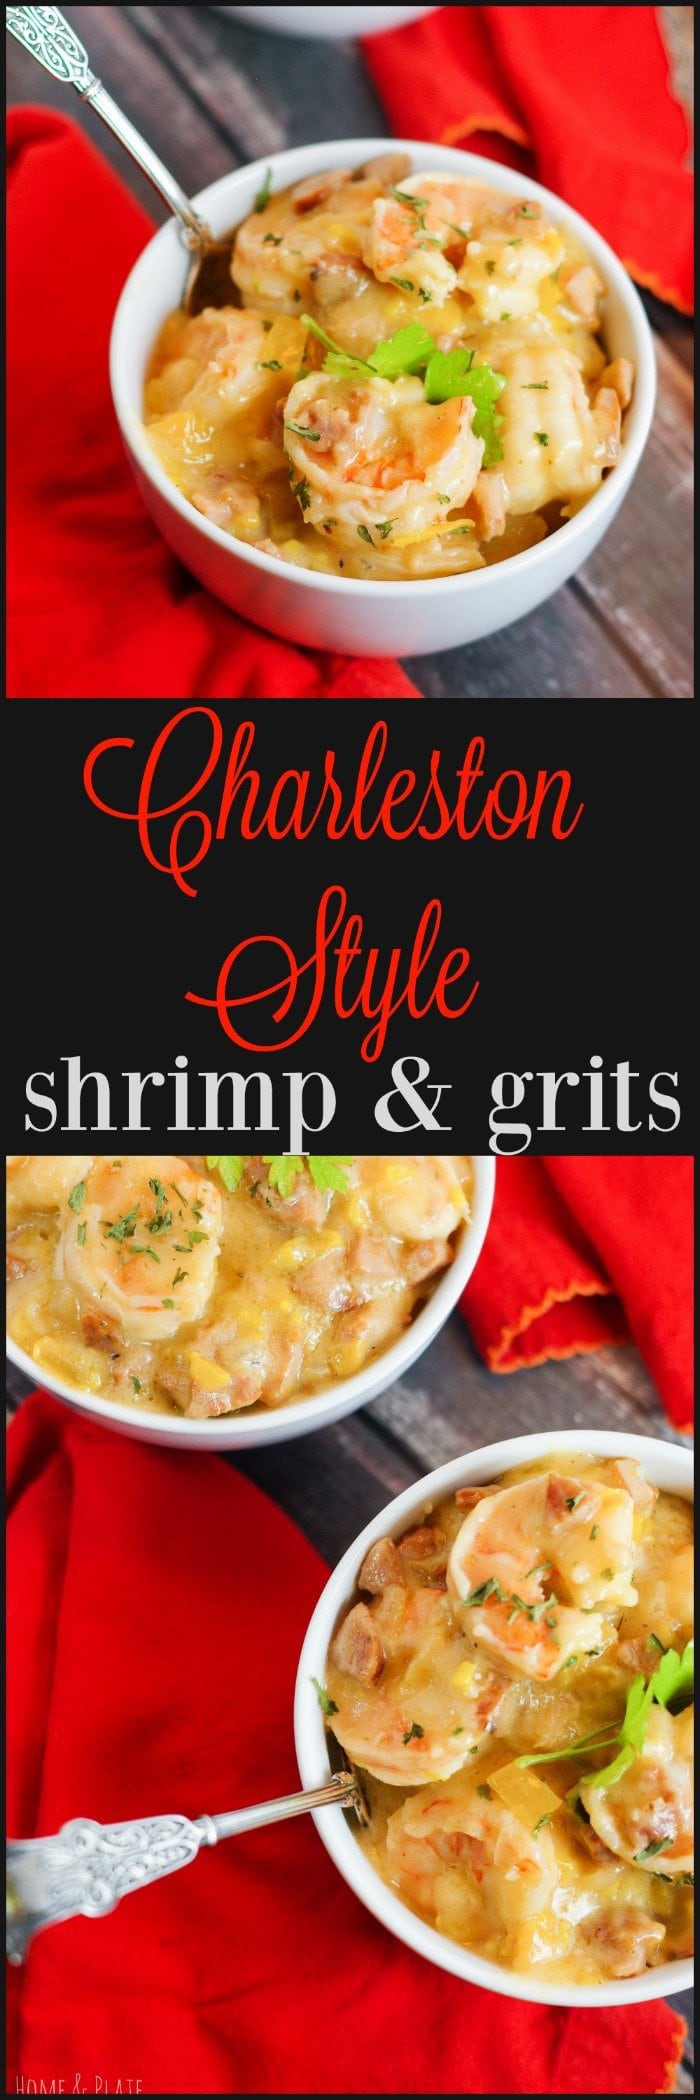 Charleston Style Shrimp & Grits | The shrimp is pink and tender, the course grits are creamy and cheesy and the heat from the andouille sausage will warm your belly.